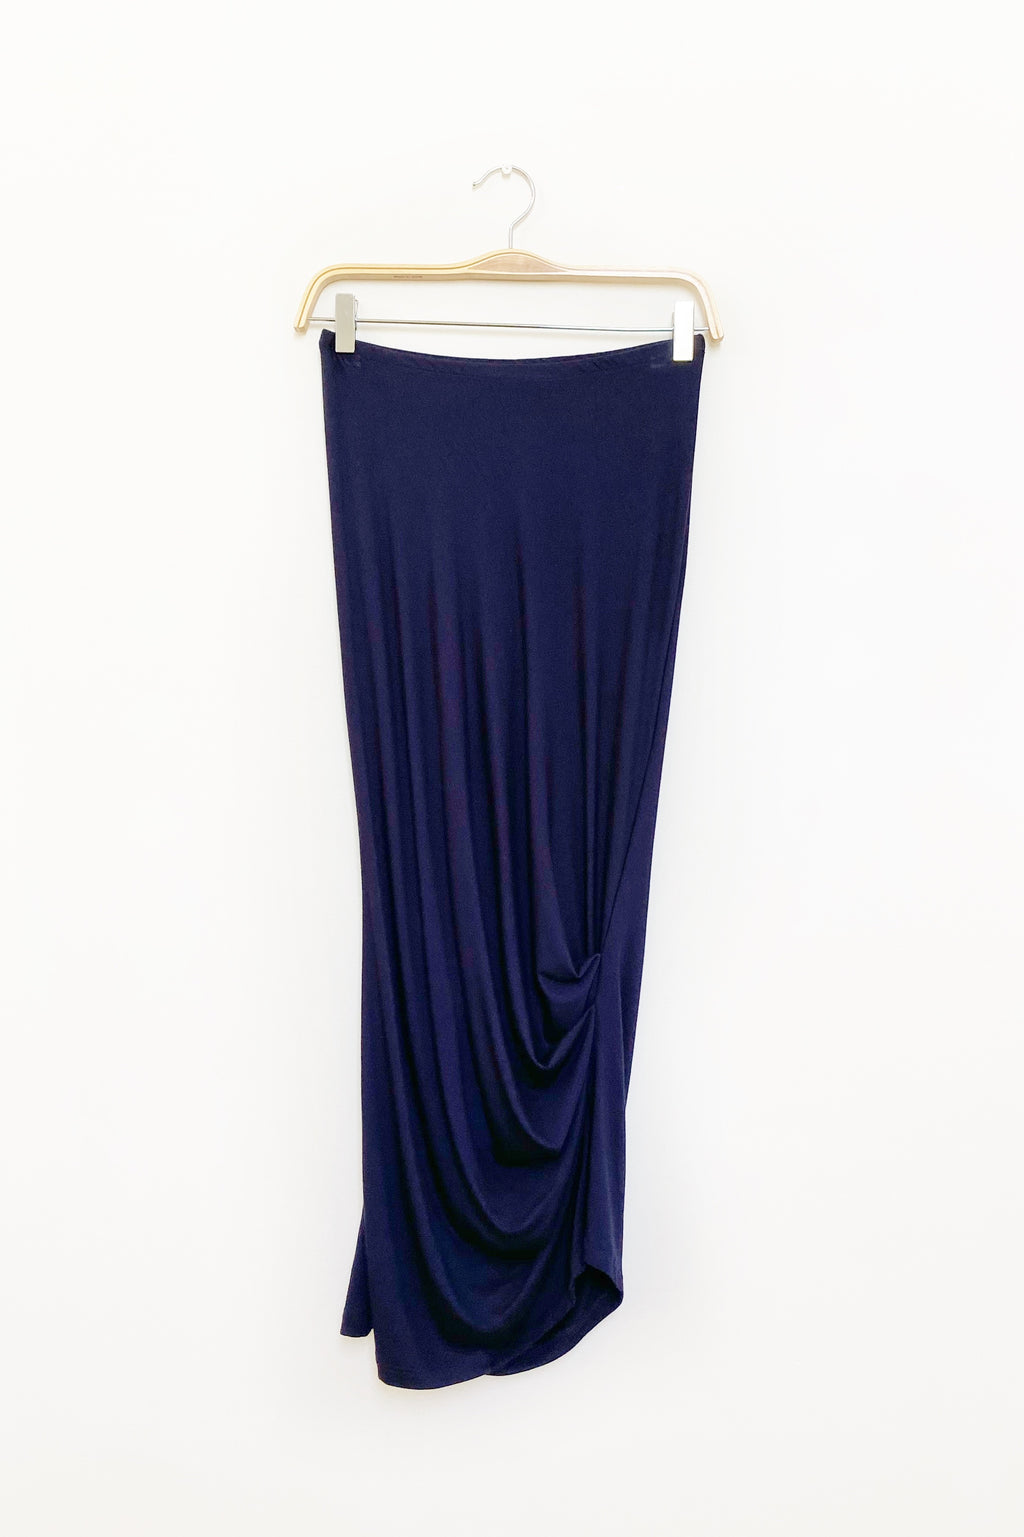 Caterpillar Long Skirt in Midnight Navy